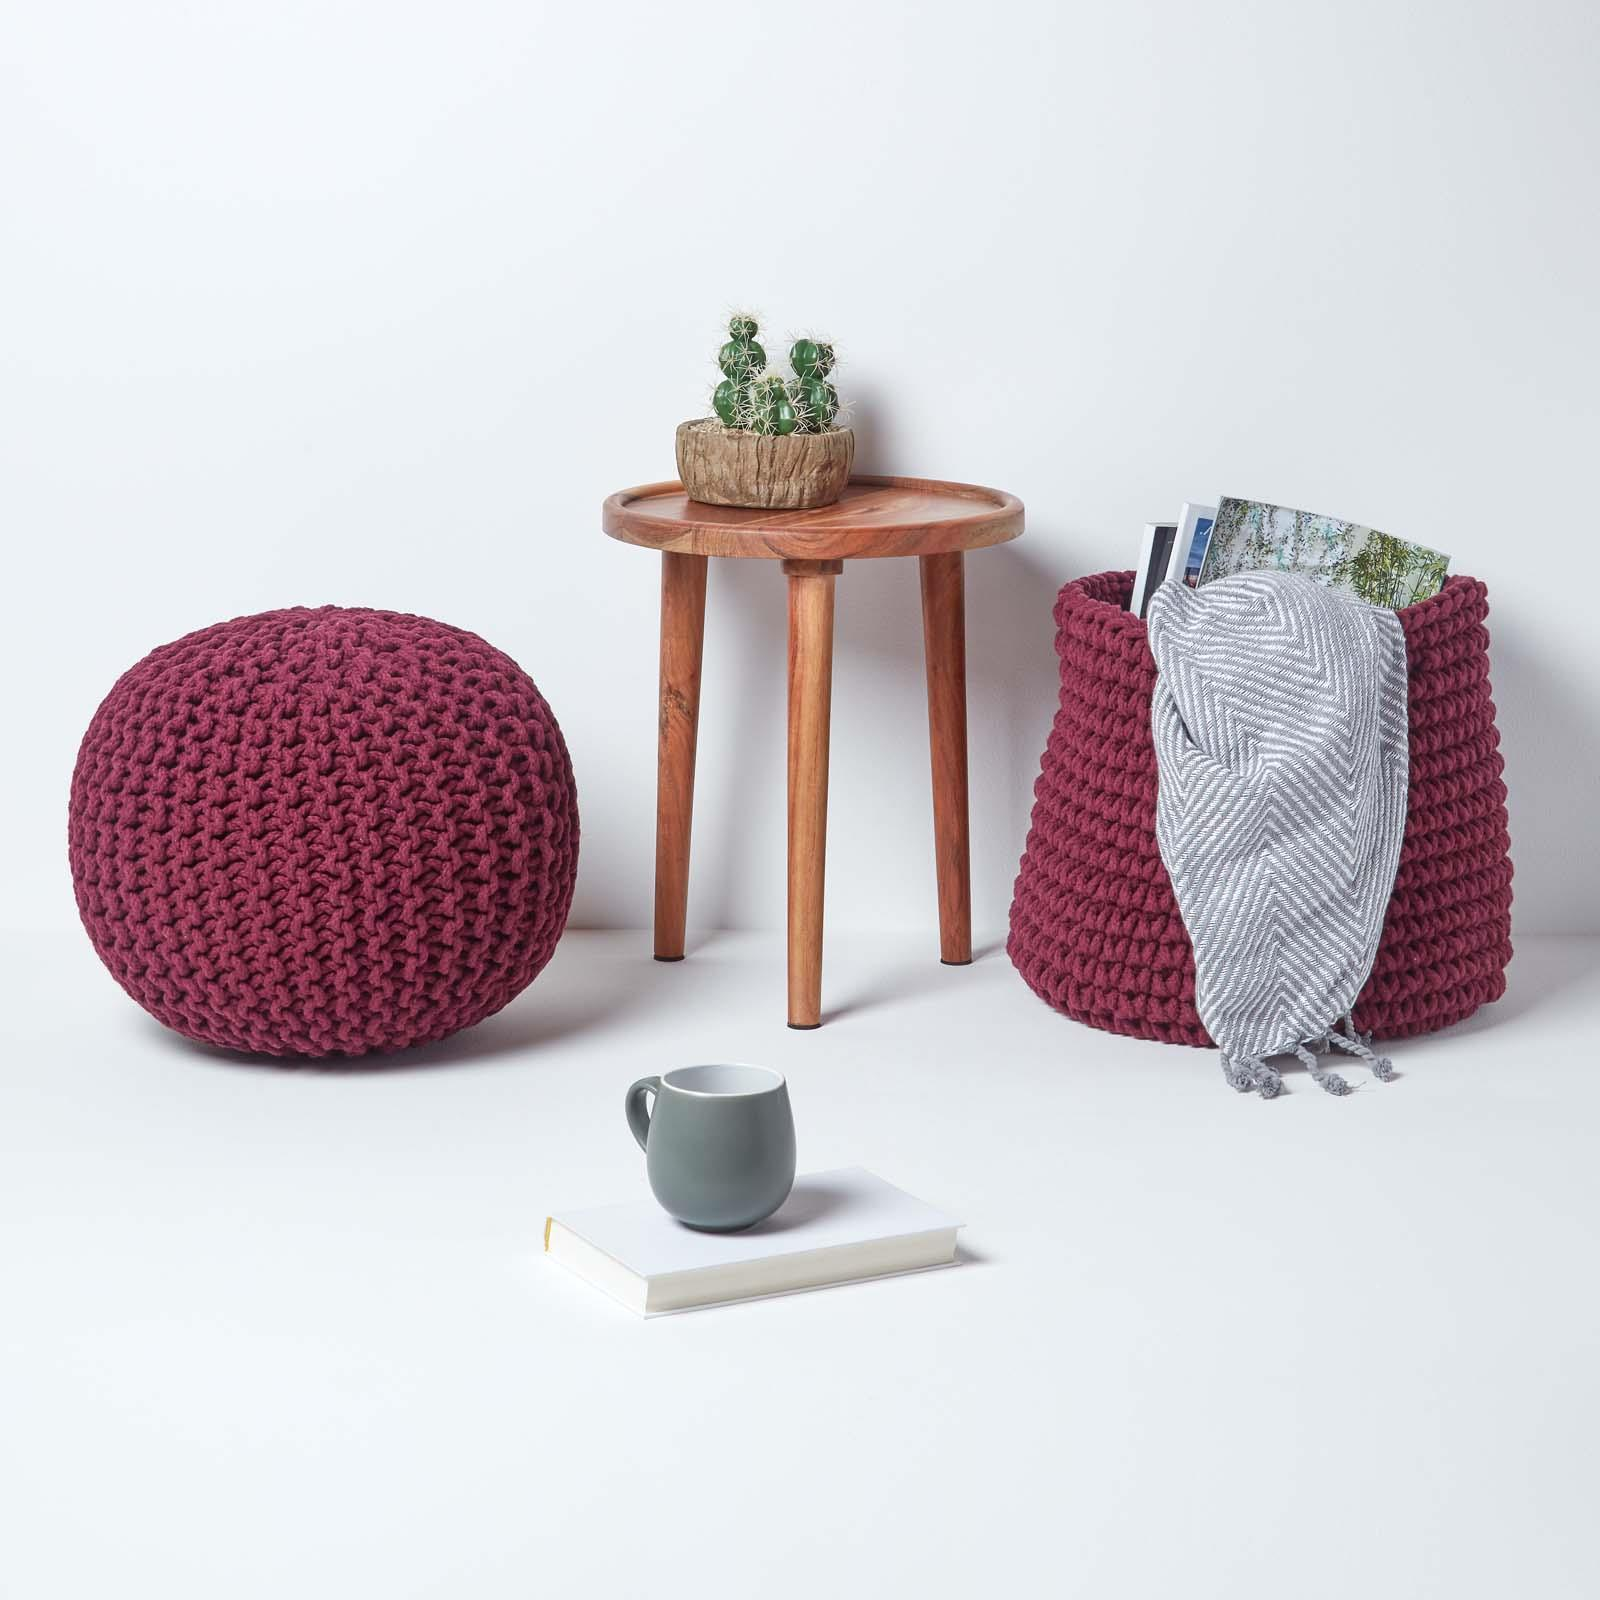 Hand-Knitted-100-Cotton-Pouffes-Round-Sphere-Or-Cube-Square-Chunky-Footstools thumbnail 157